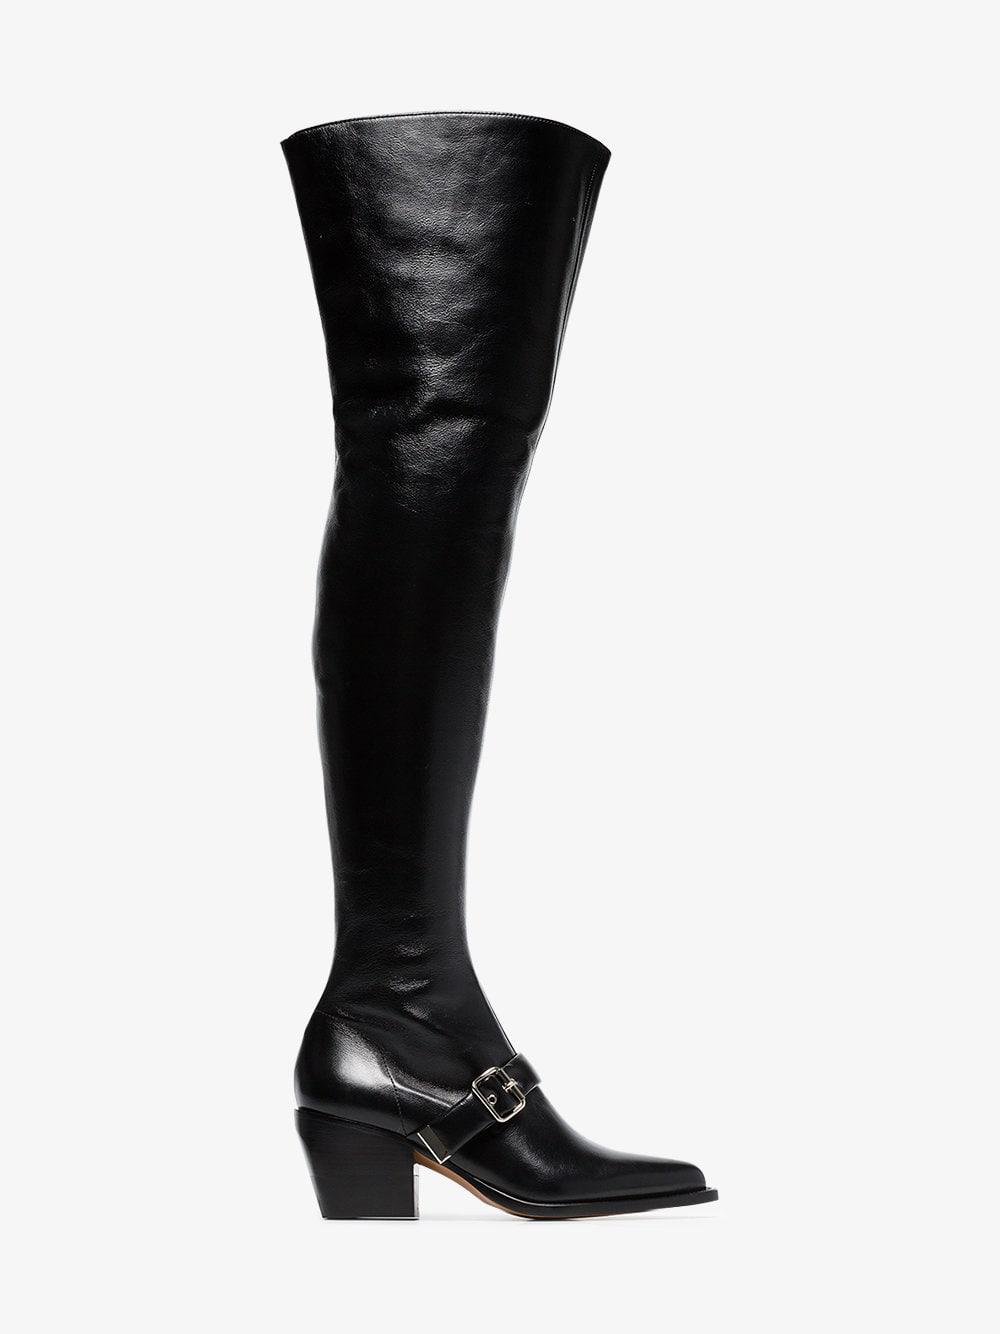 35fc81c5d34 Chloé Black Over The Knee 80 Leather Boots in Black - Lyst